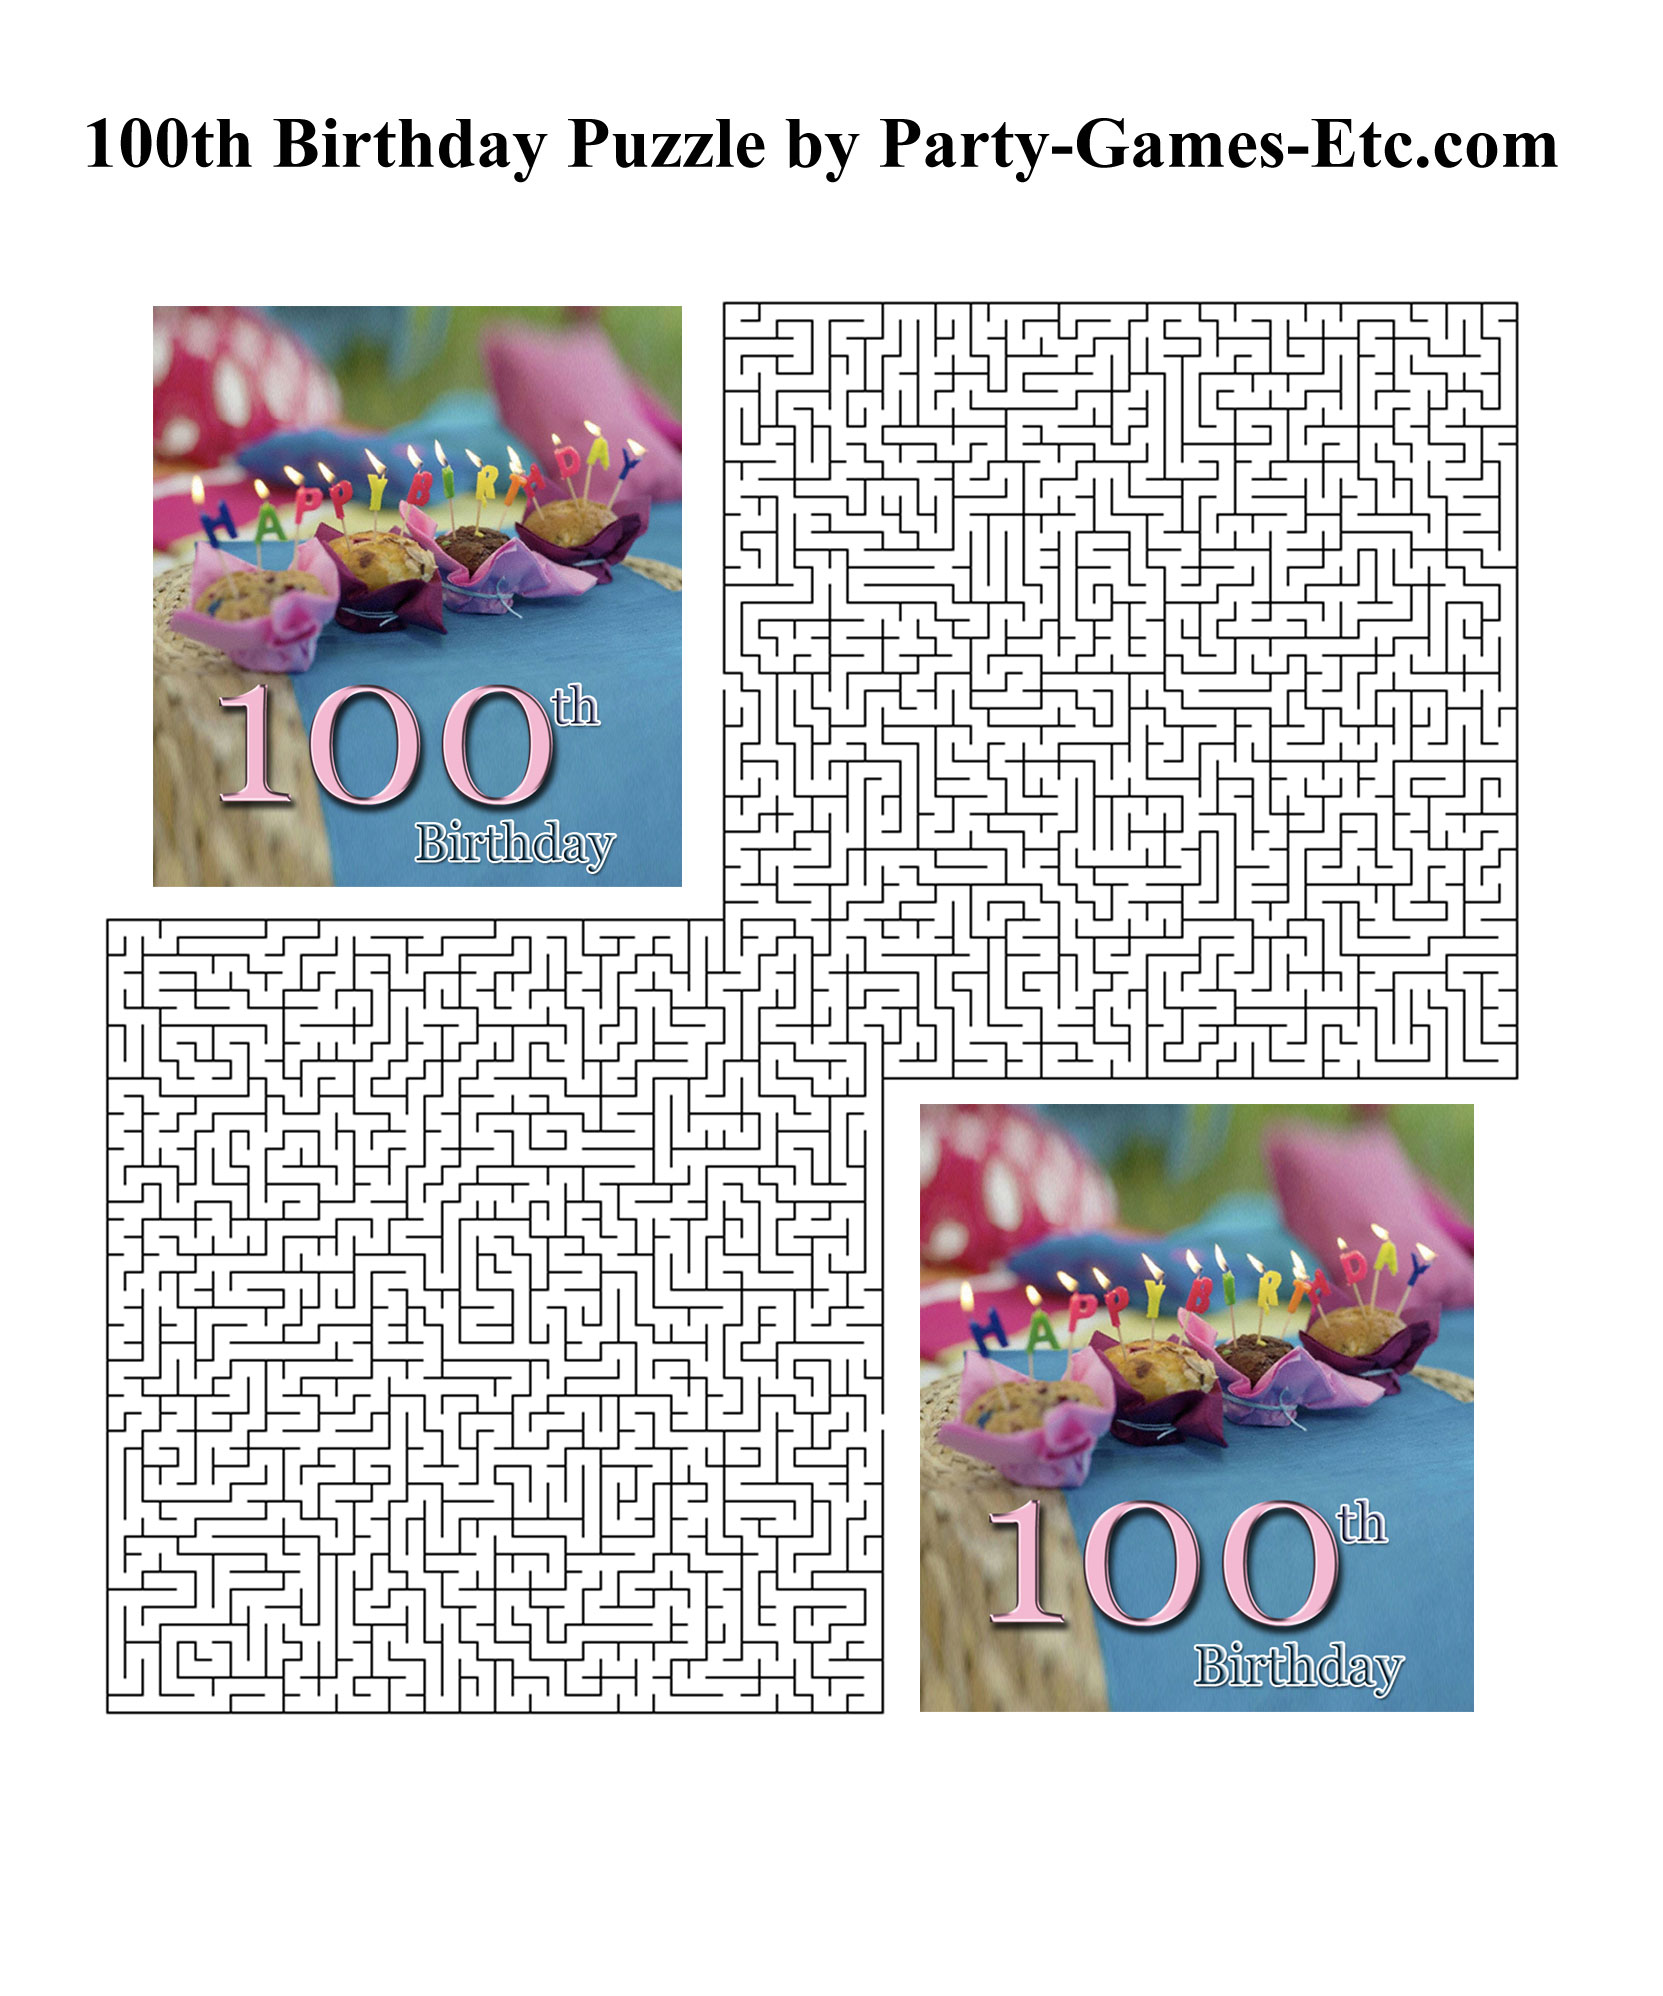 100th Birthday Party Games, Free Printable Games And